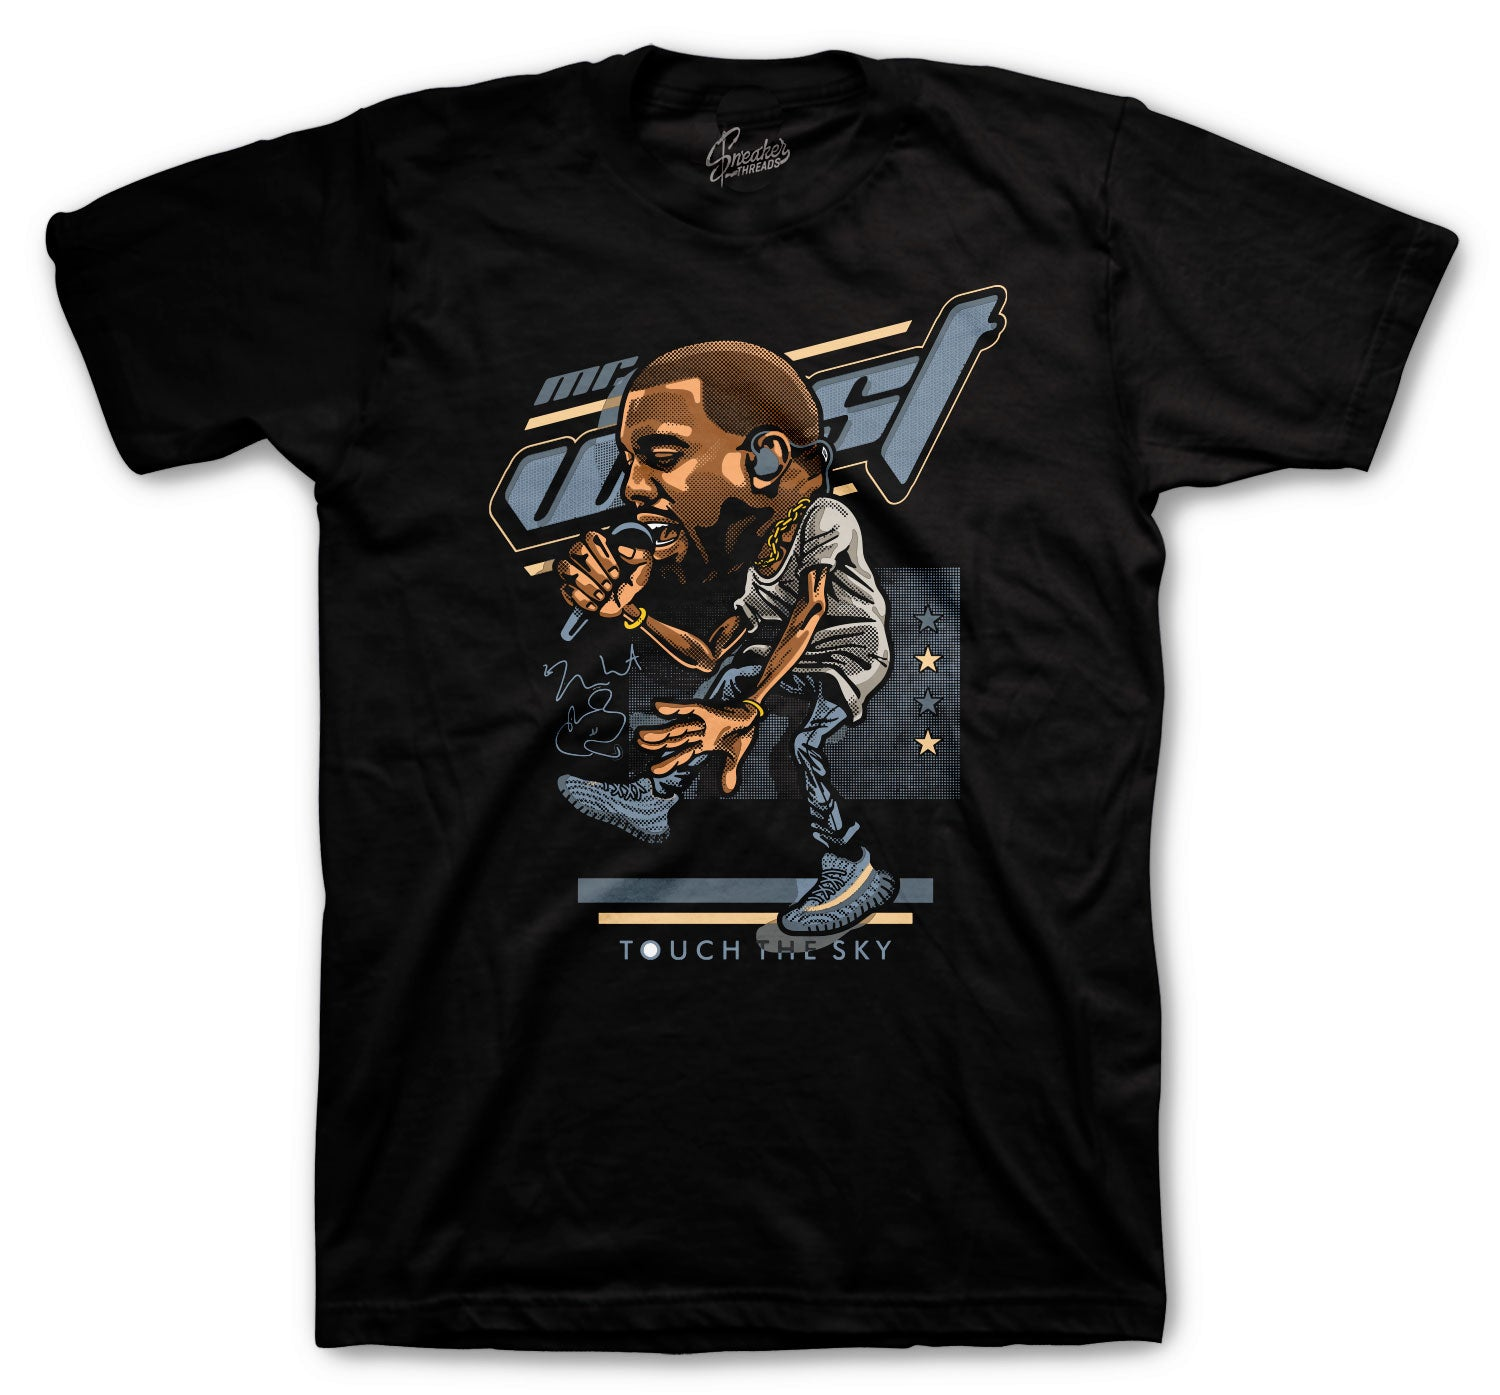 Yeezy Ash Blue 350 Shirt - Touch The Sky - Black